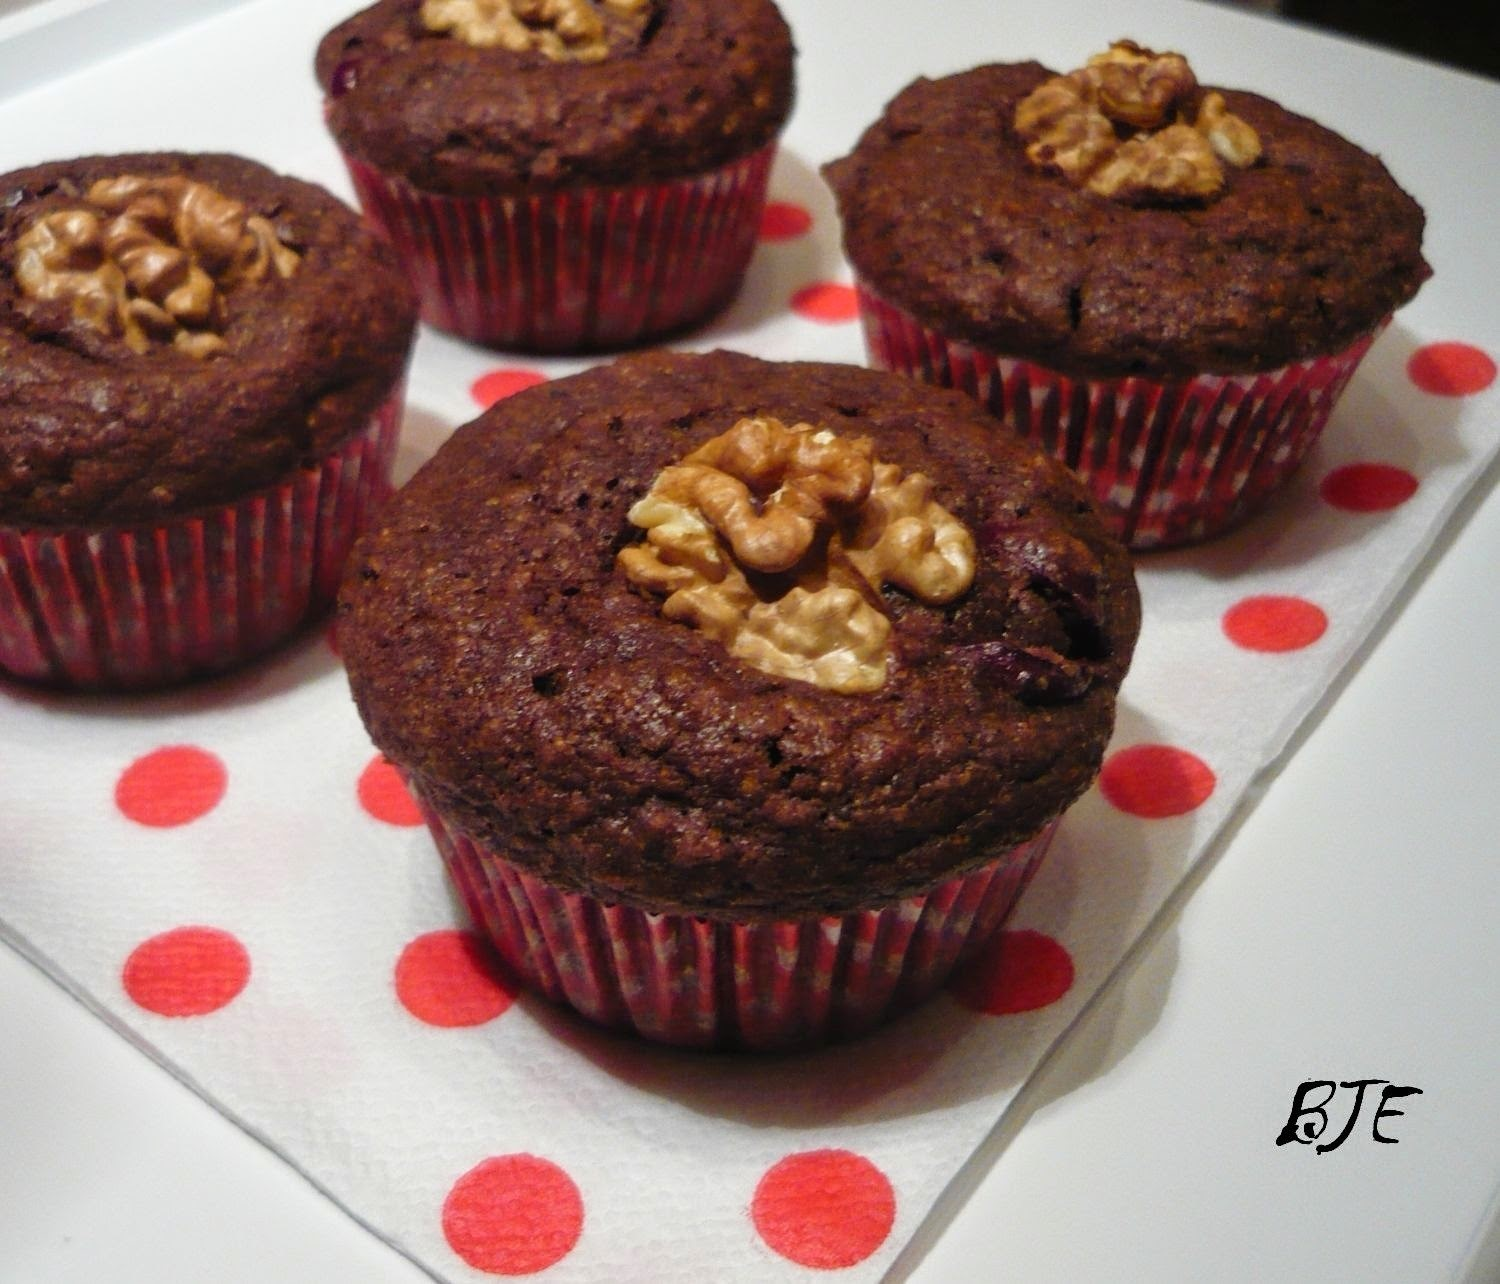 Duplacsokis meggyes muffin